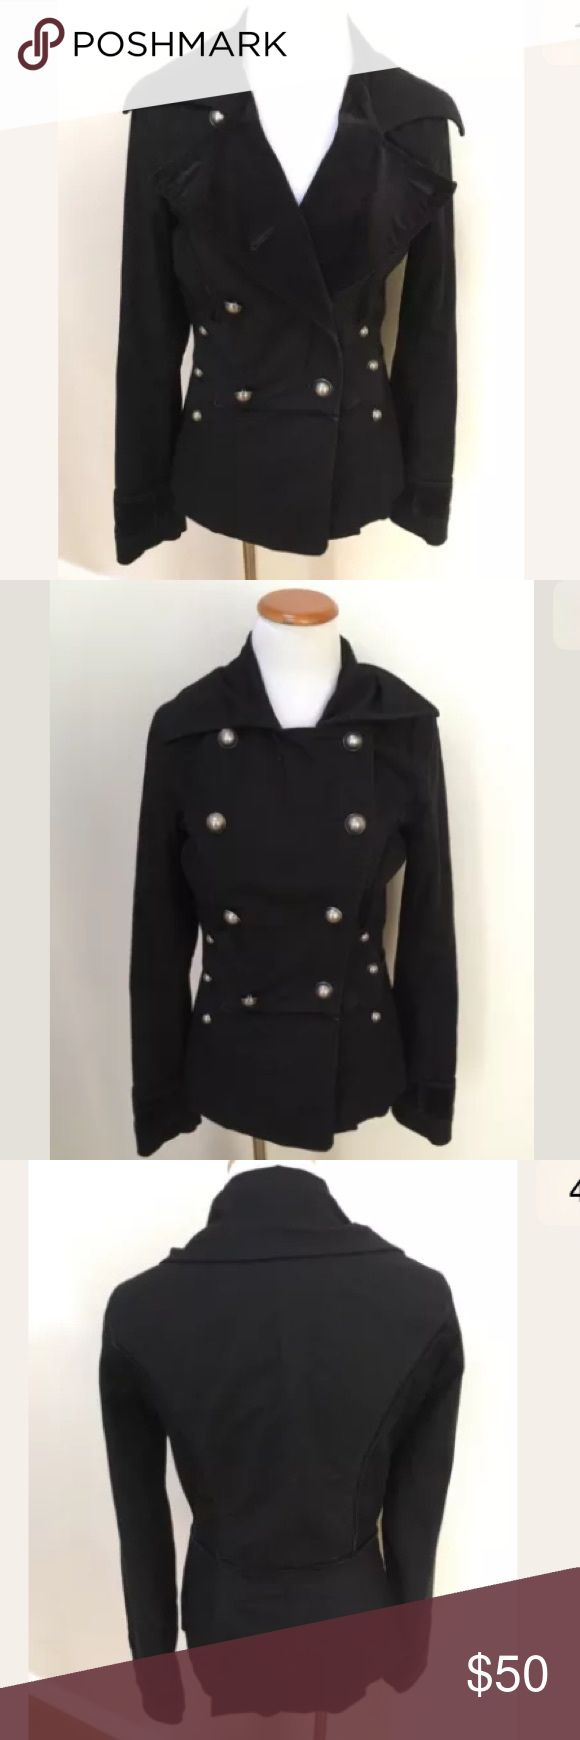 Twill 22 Anthropologie Black Military Jacket Twill 22 Anthropologie Black Double Breasted Military Jacket Coat Petite. Excellent condition! May want to re-enforce the buttons. Clean and comes from smoke free home. Questions welcomed! Anthropologie Jackets & Coats